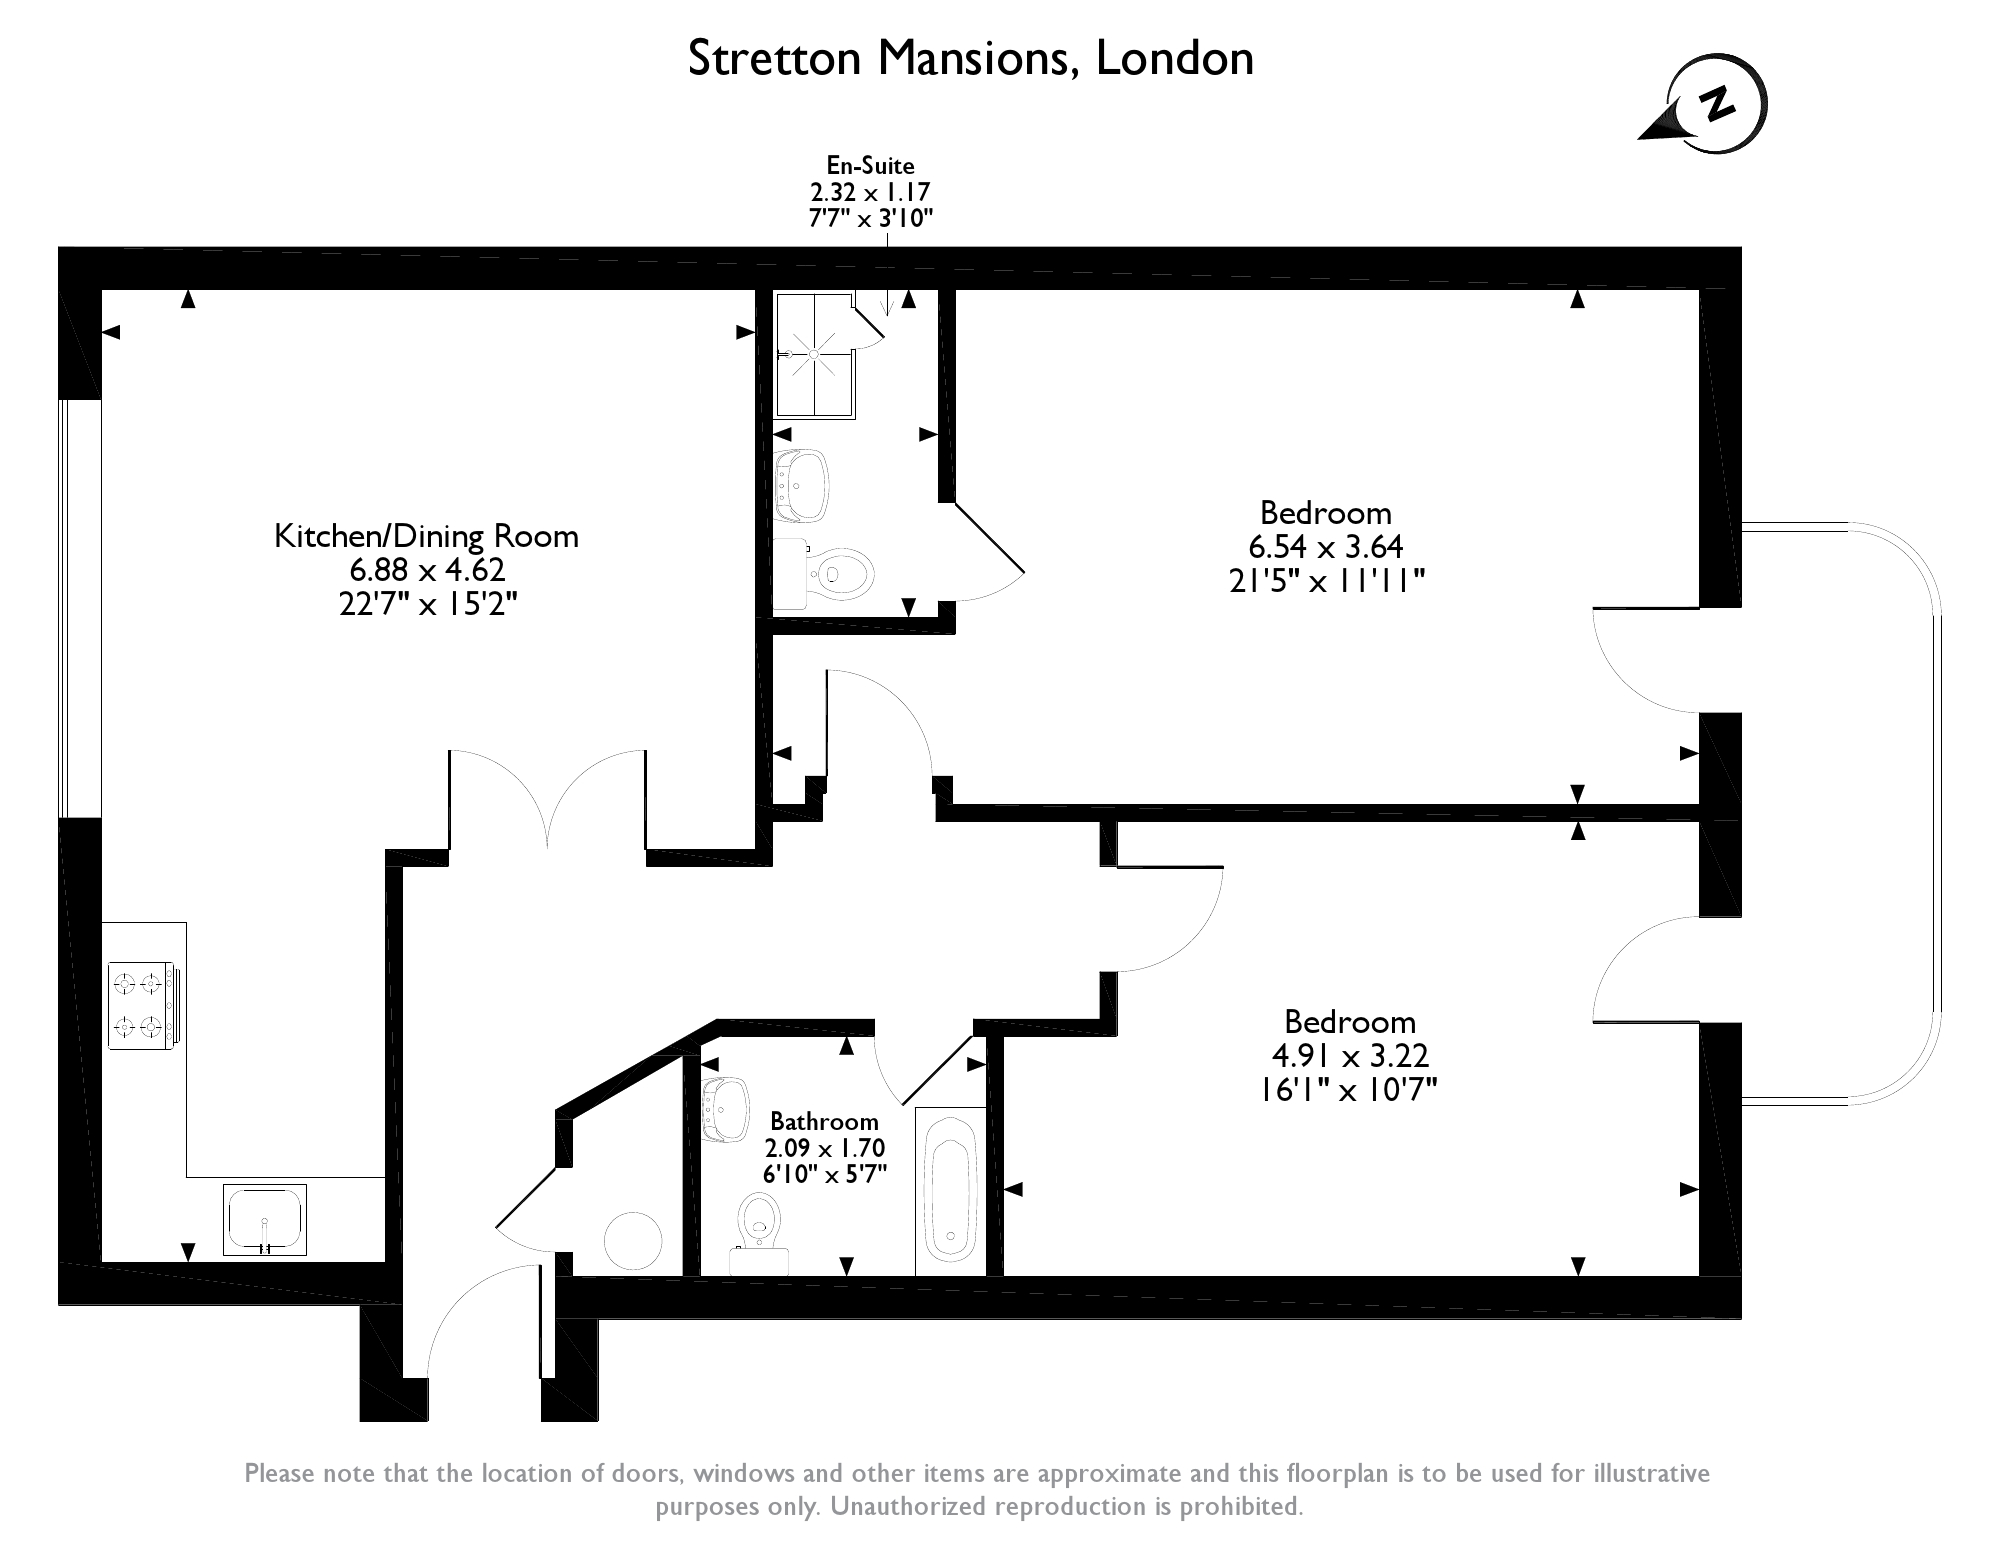 Stretton Mansions,London, SE8 floor plan